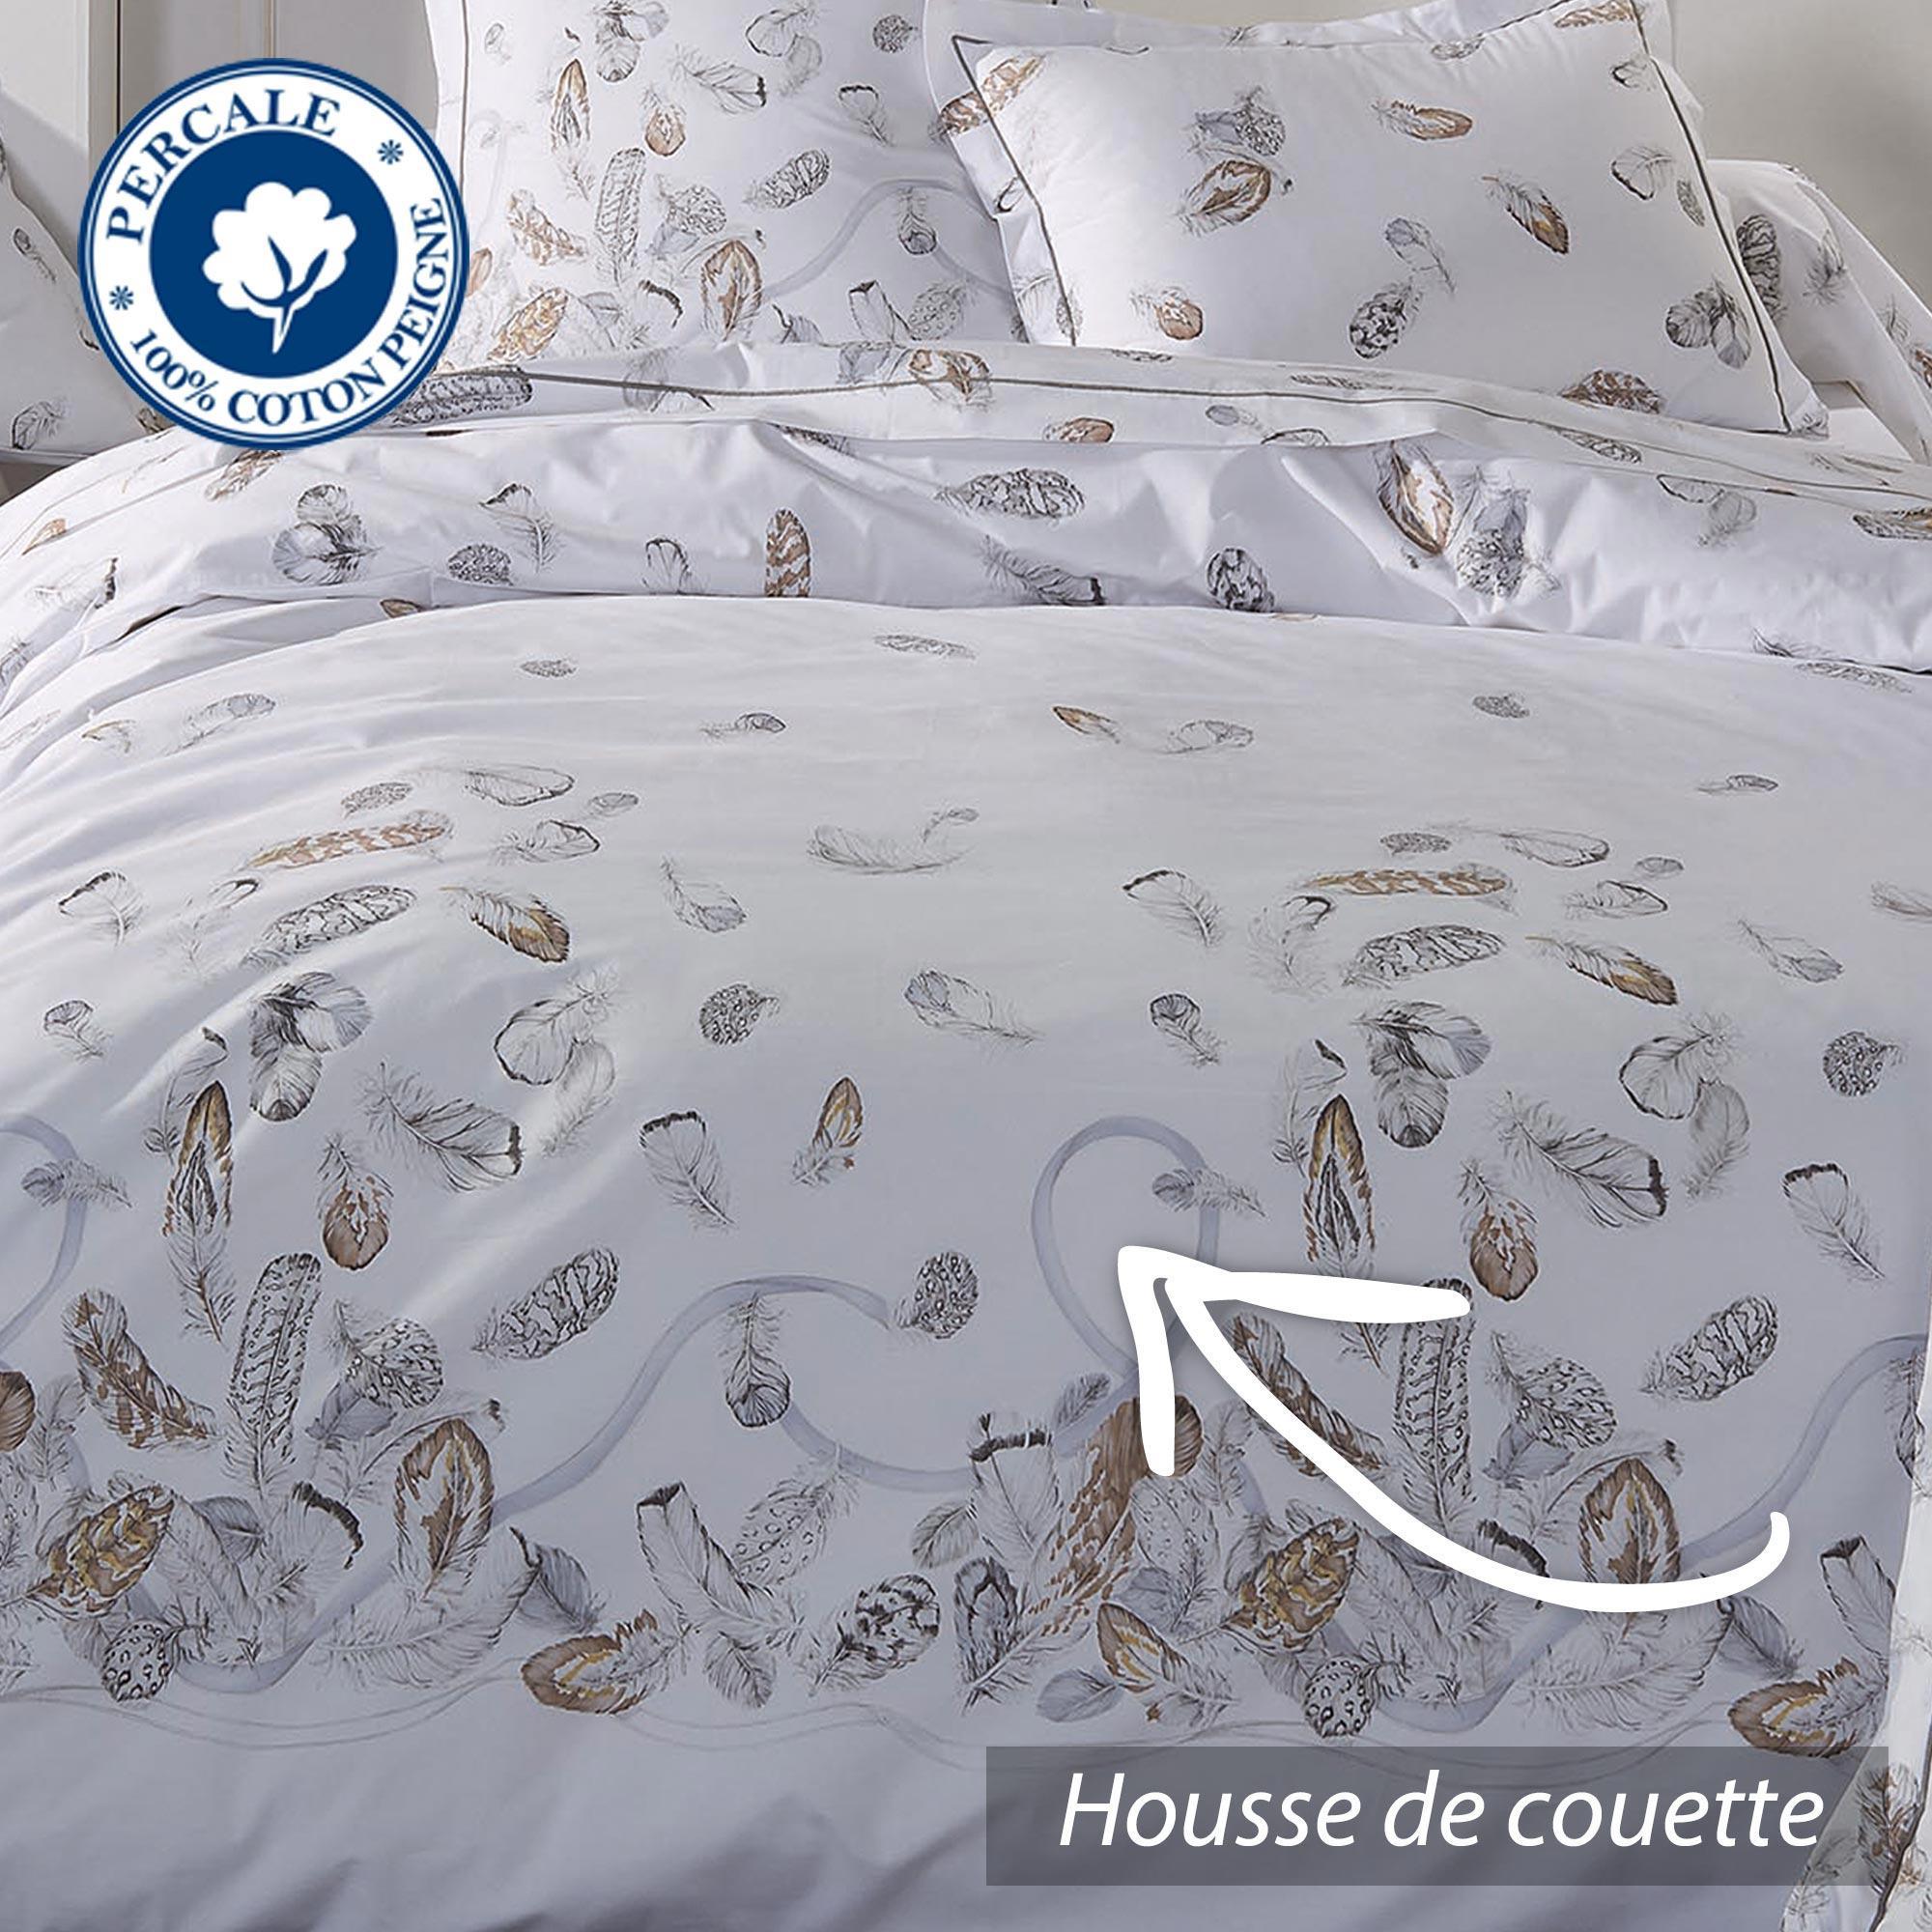 housse de couette percale pur coton peign 300x240 cm. Black Bedroom Furniture Sets. Home Design Ideas